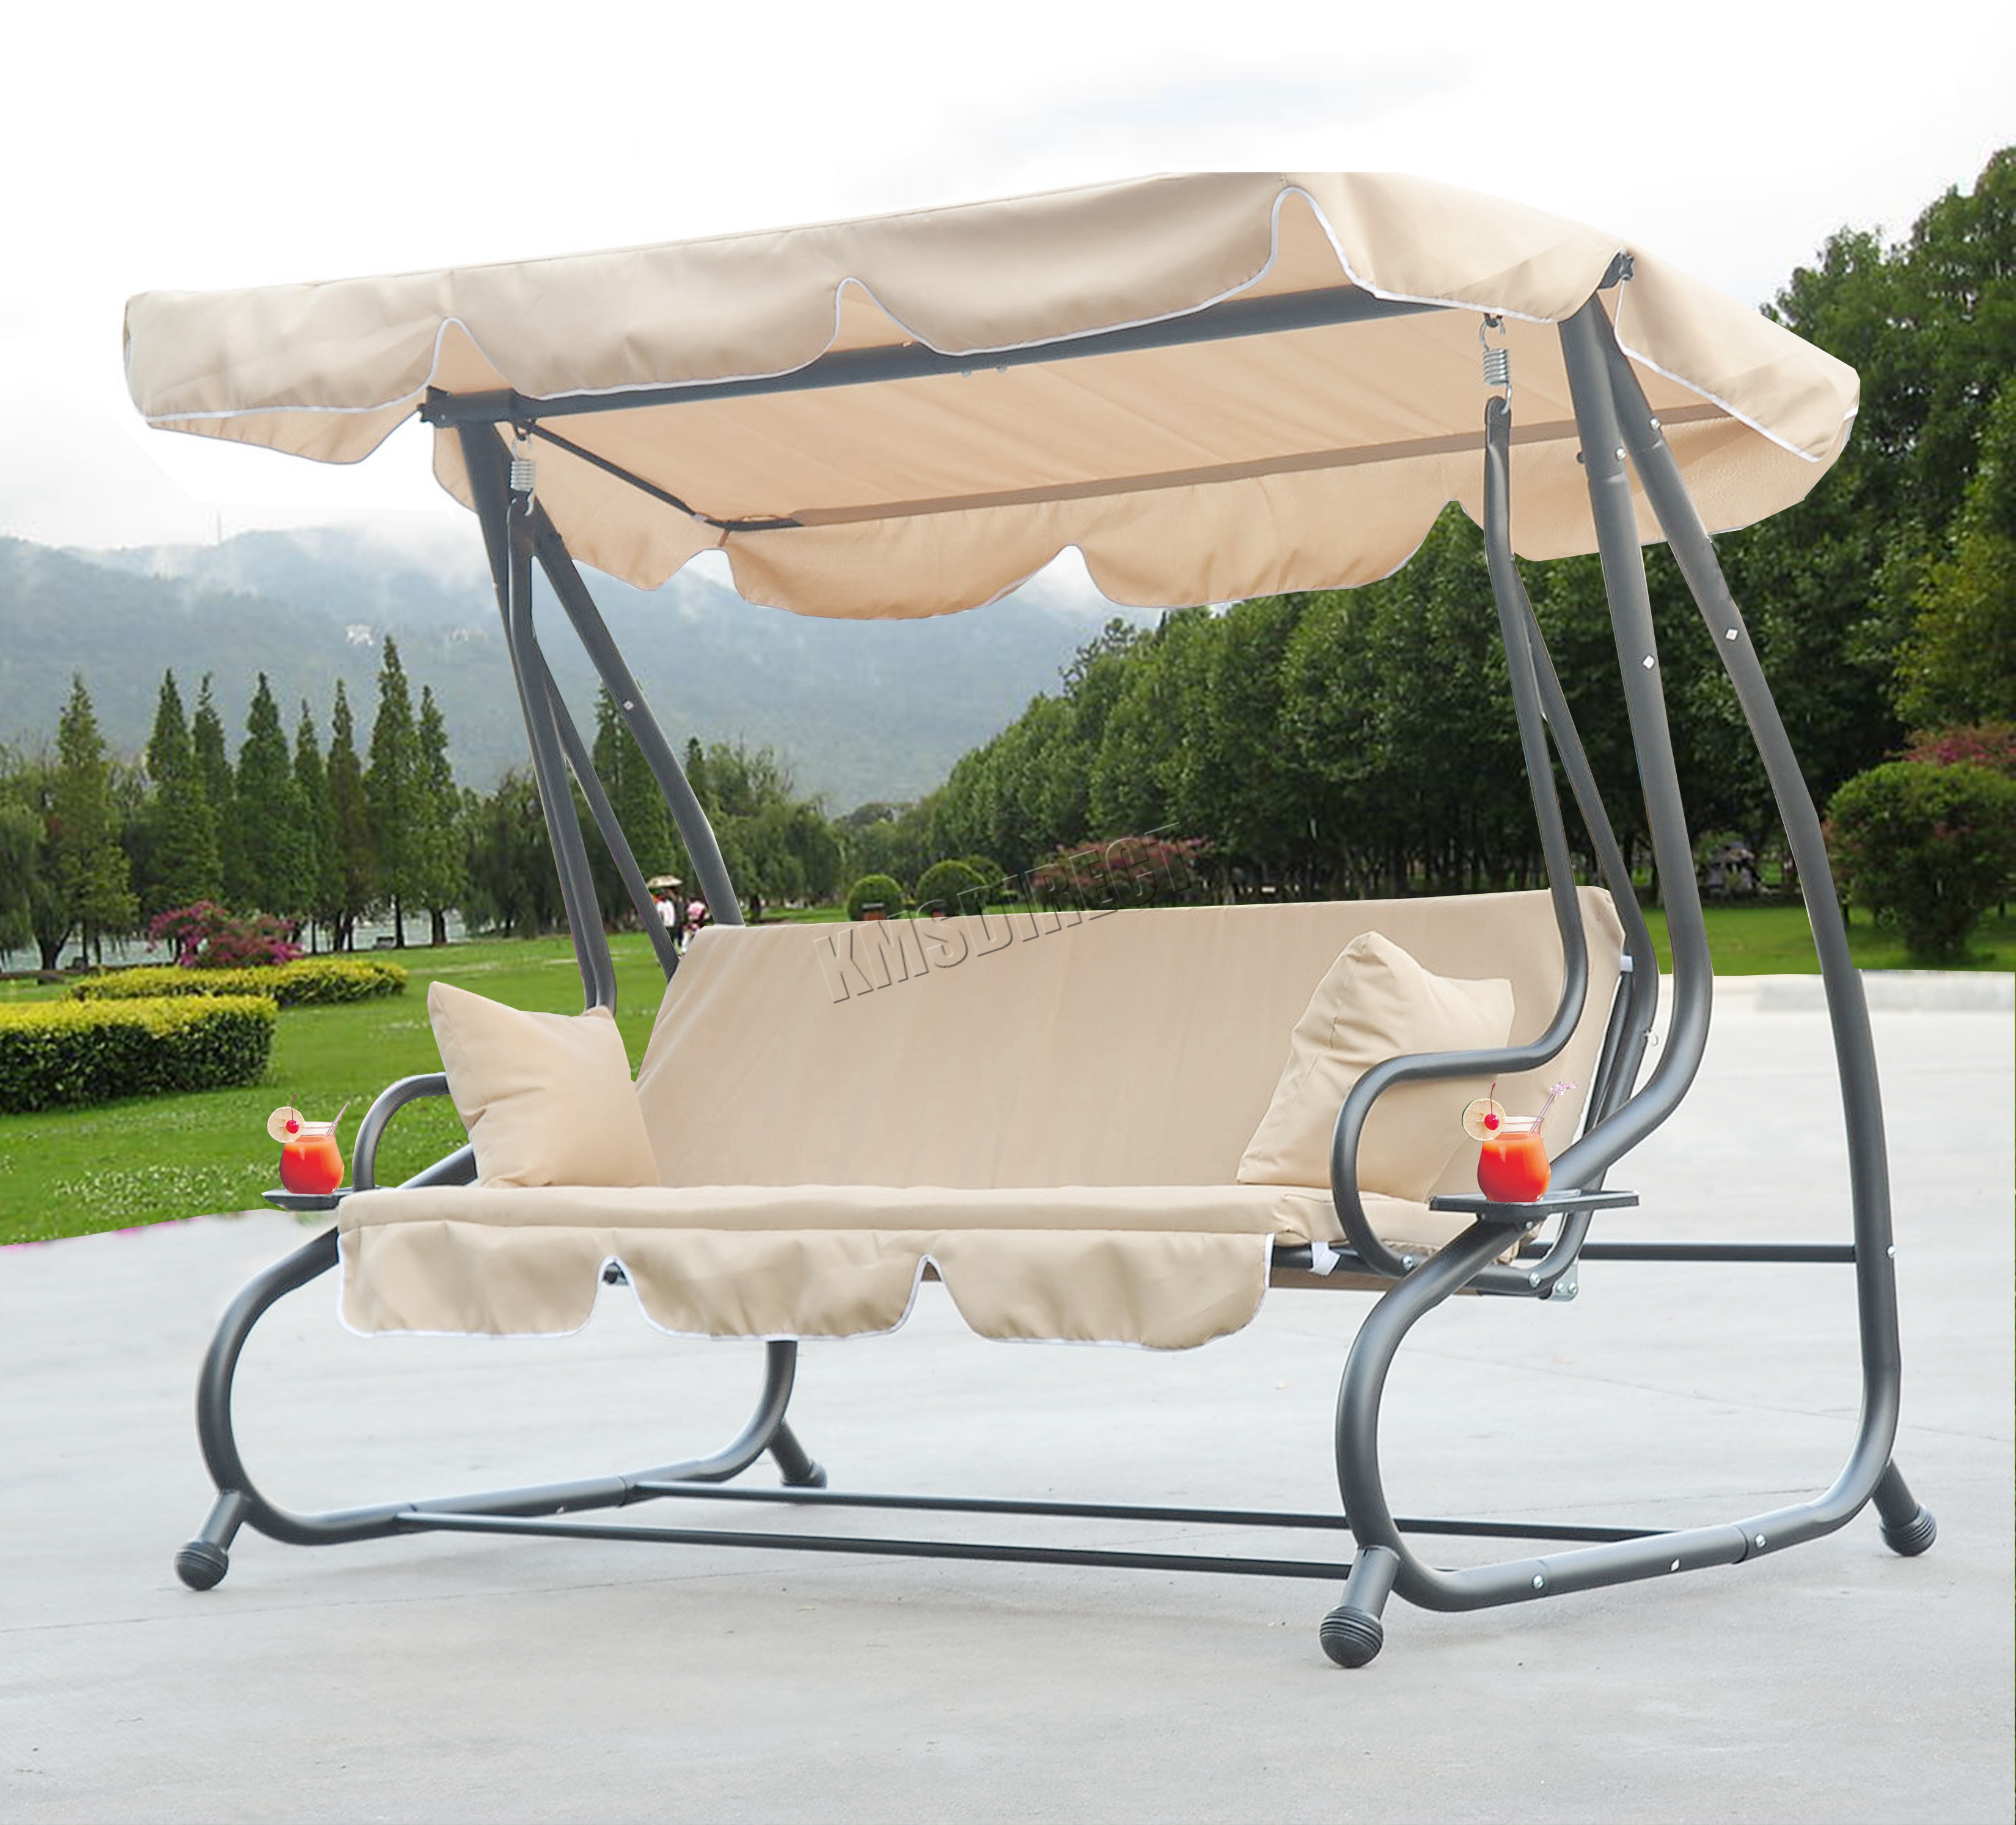 Foxhunter fhsc05 garden swing hammock 3 seater chair bench for Outdoor hanging bed swing